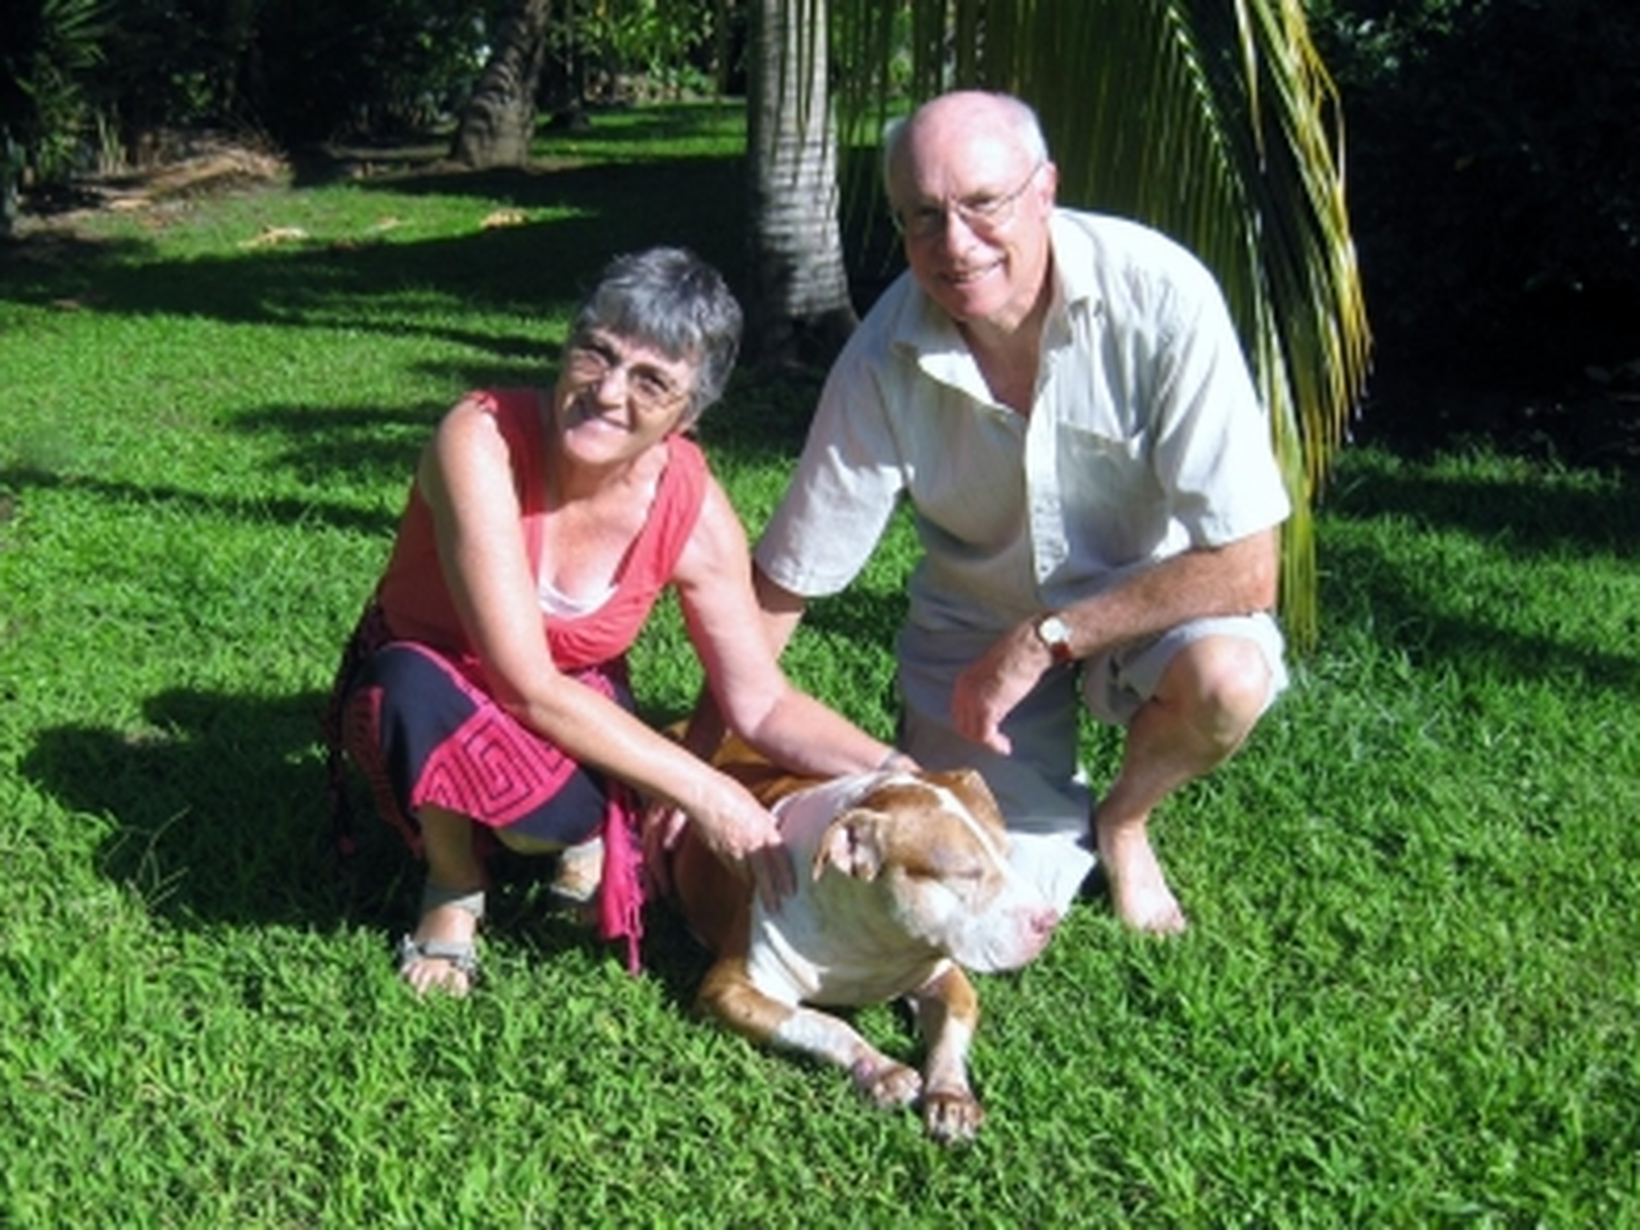 Lois & Kevin from Auckland, New Zealand